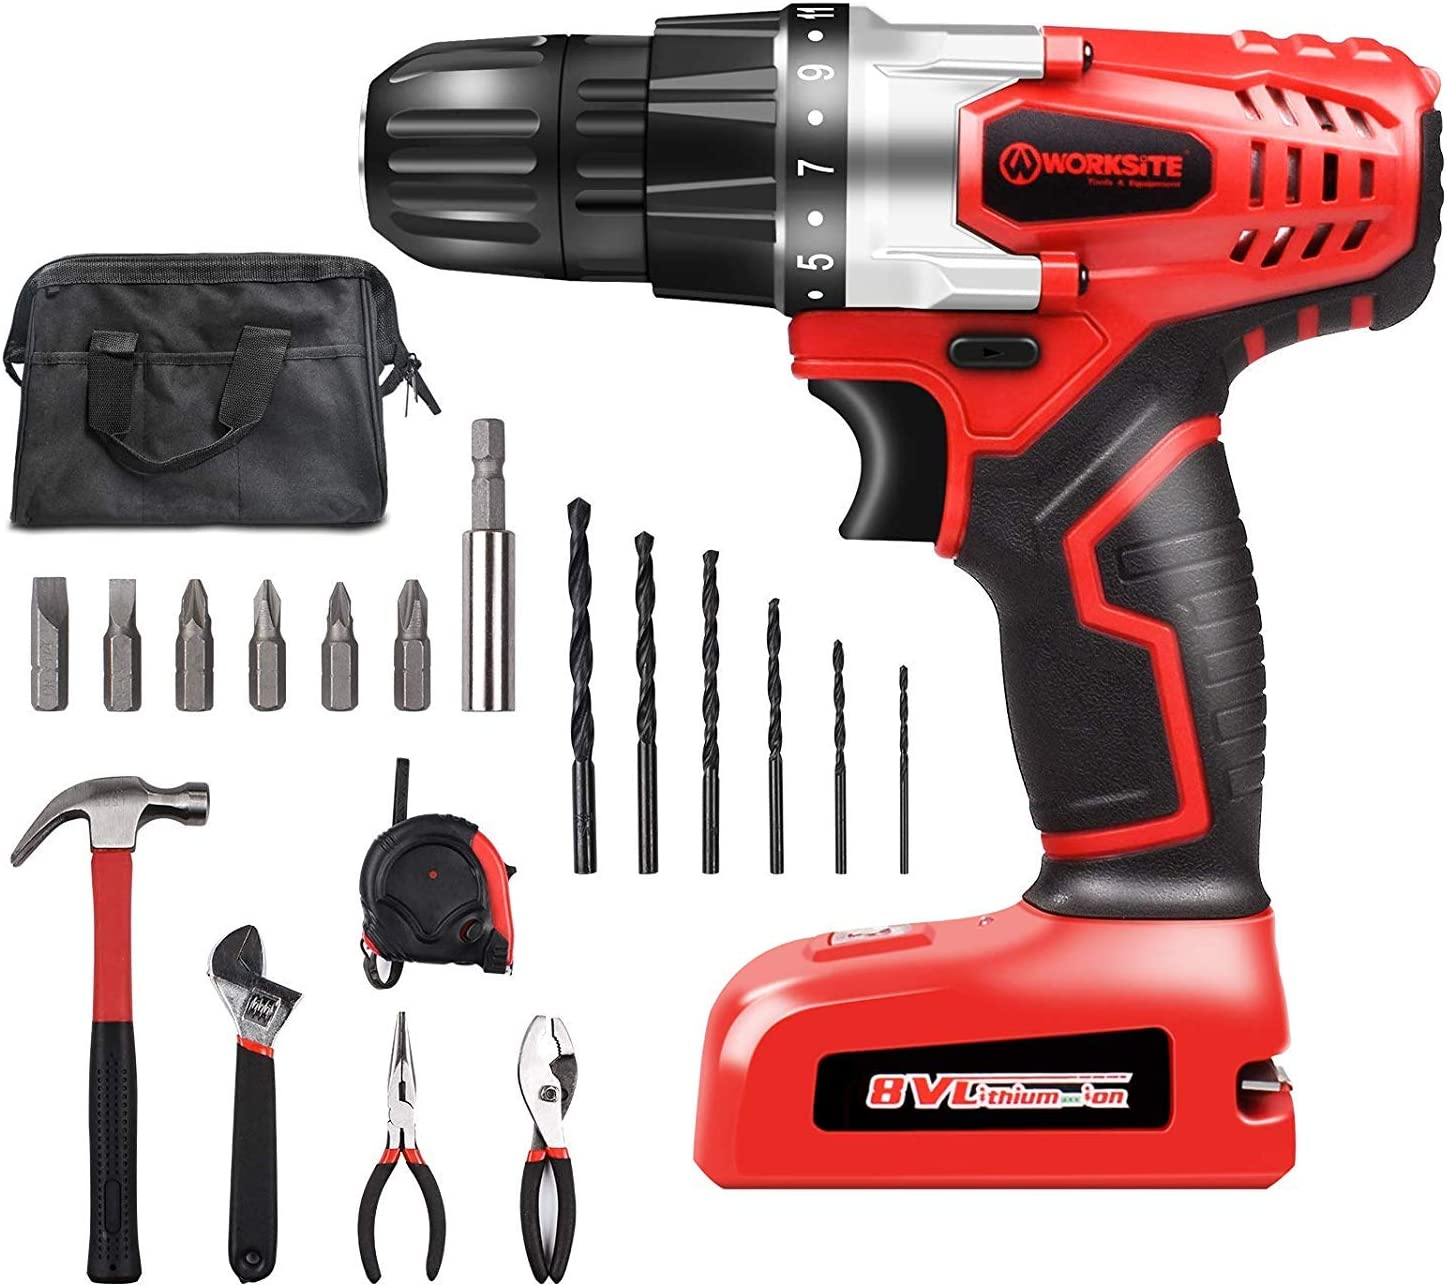 WORKSITE Household Tool Kit Including 8V Cordless Drill Driver with 1300mAh Li-Ion Rechargeable 16 Position Keyless Torque Clutch, Variable Speed Switch, Accessory Set, Hand Tools and Tool Bag